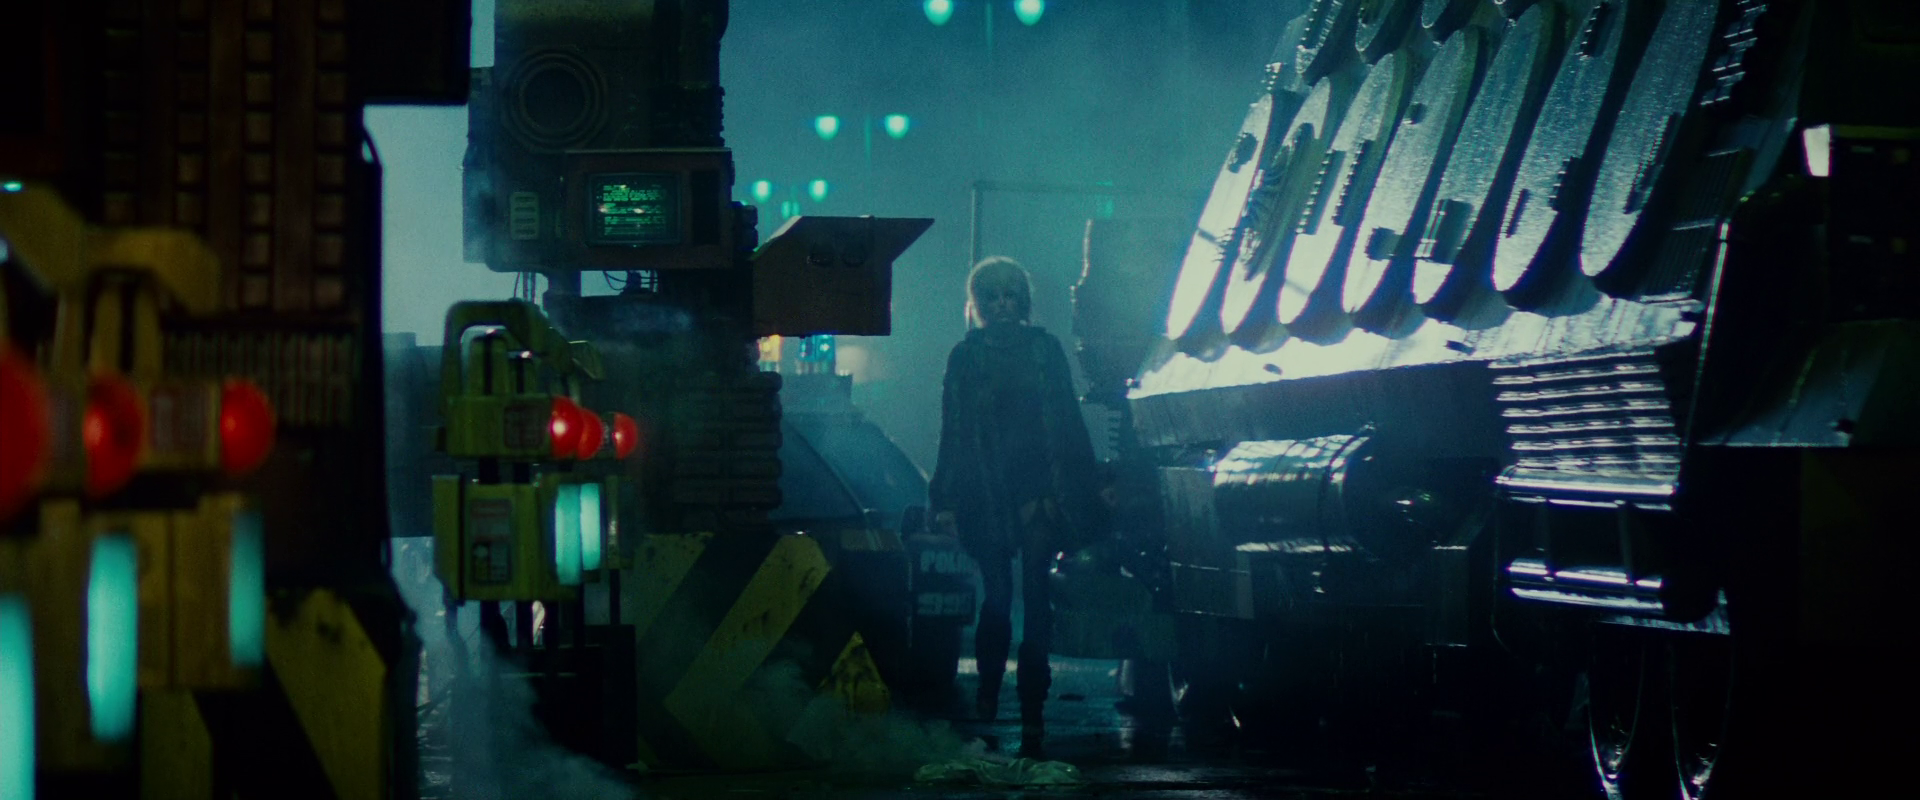 an analysis of the movie the blade runner Ford, with his star wars cachet, was blade runner's top-line draw, but it's hauer's movie all the way blade runner took years to find an audience.